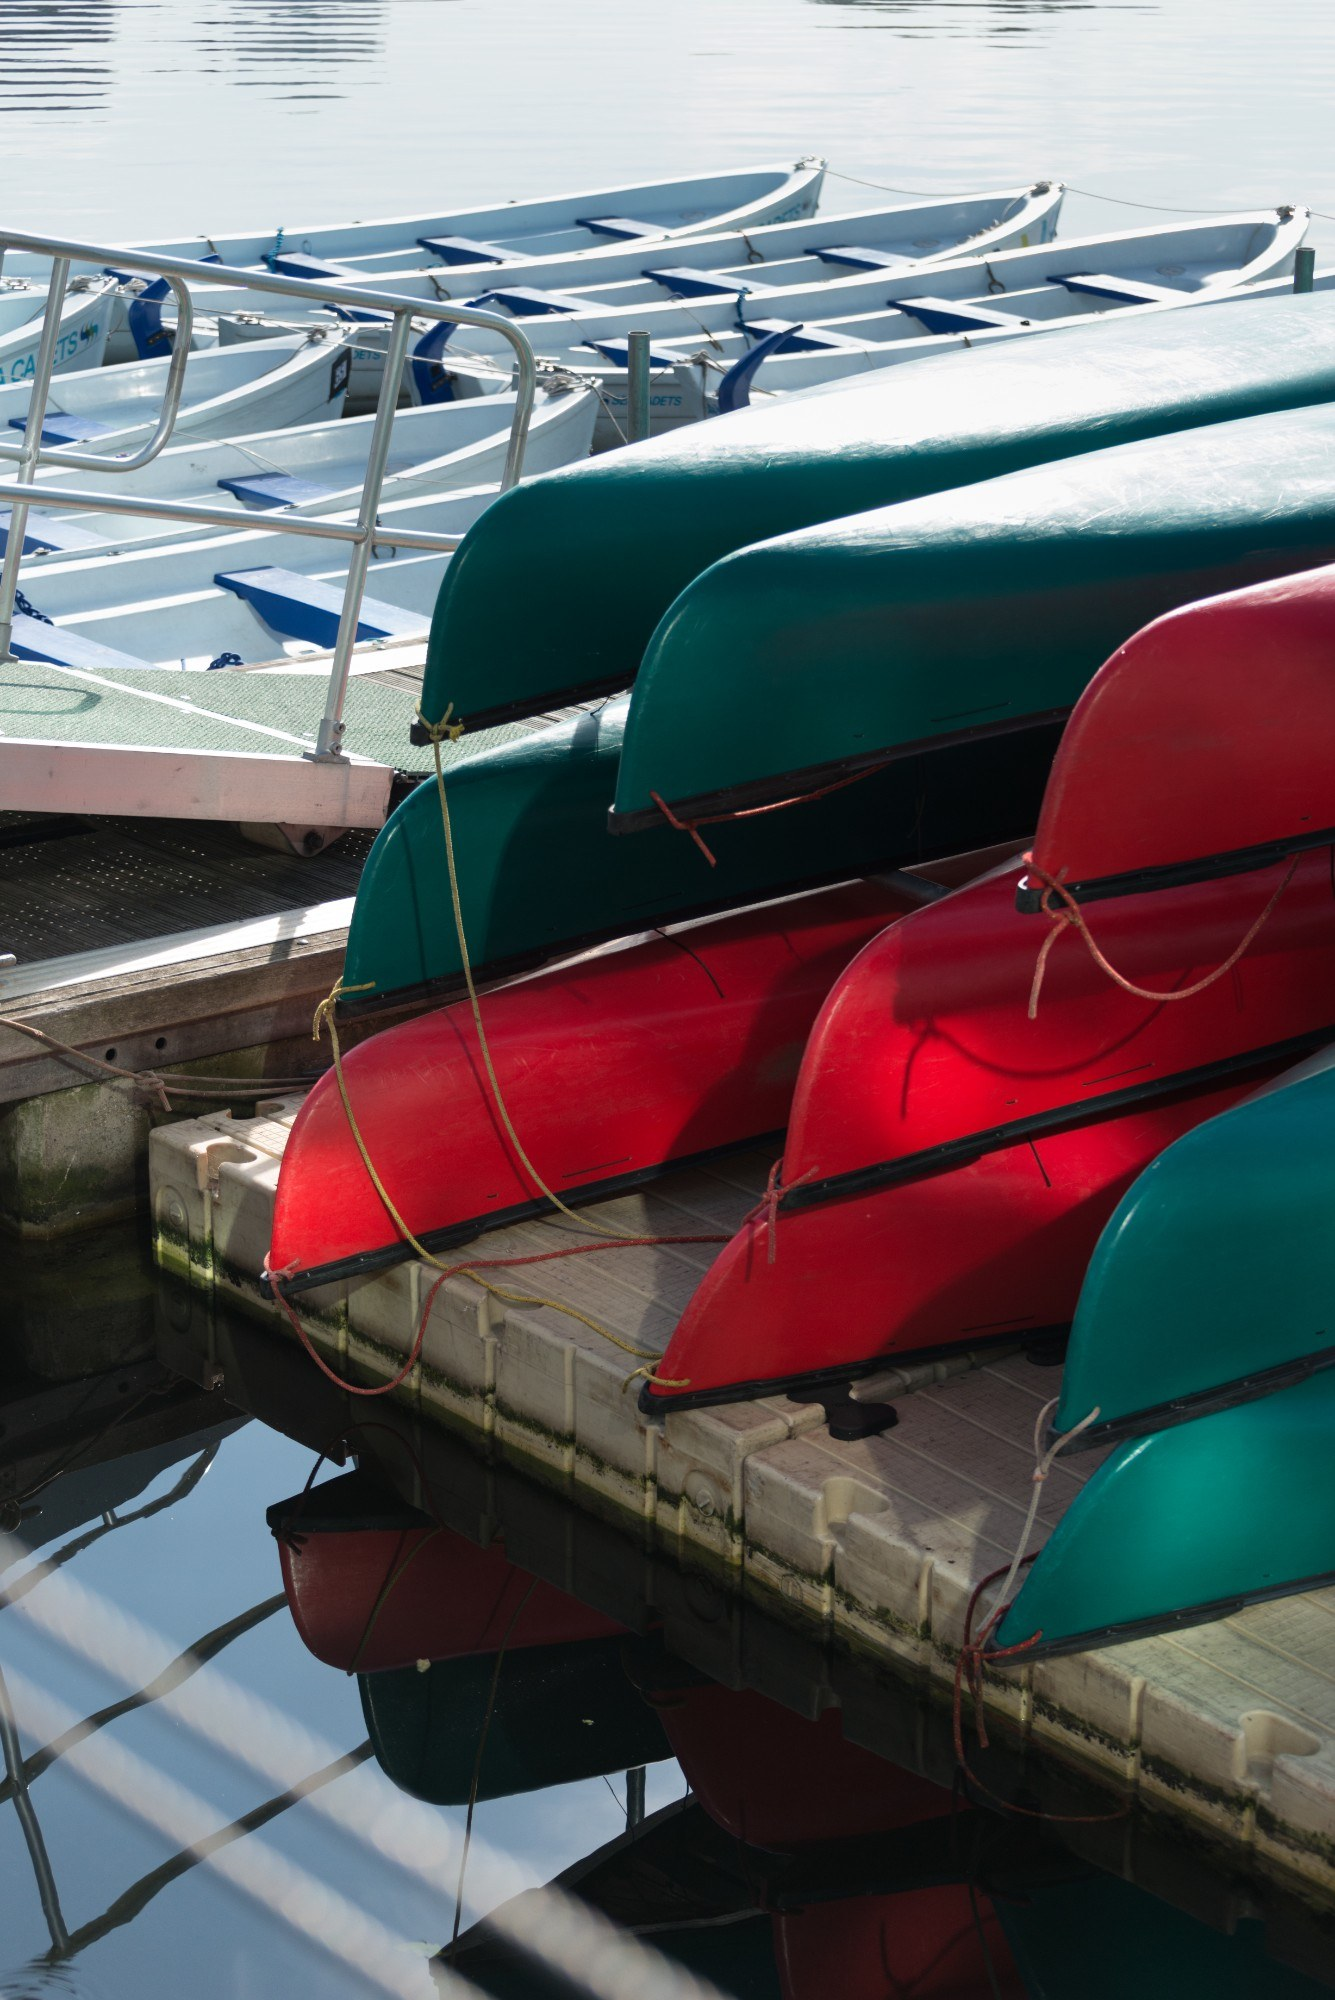 Boats on the waterside, bottom-side upward